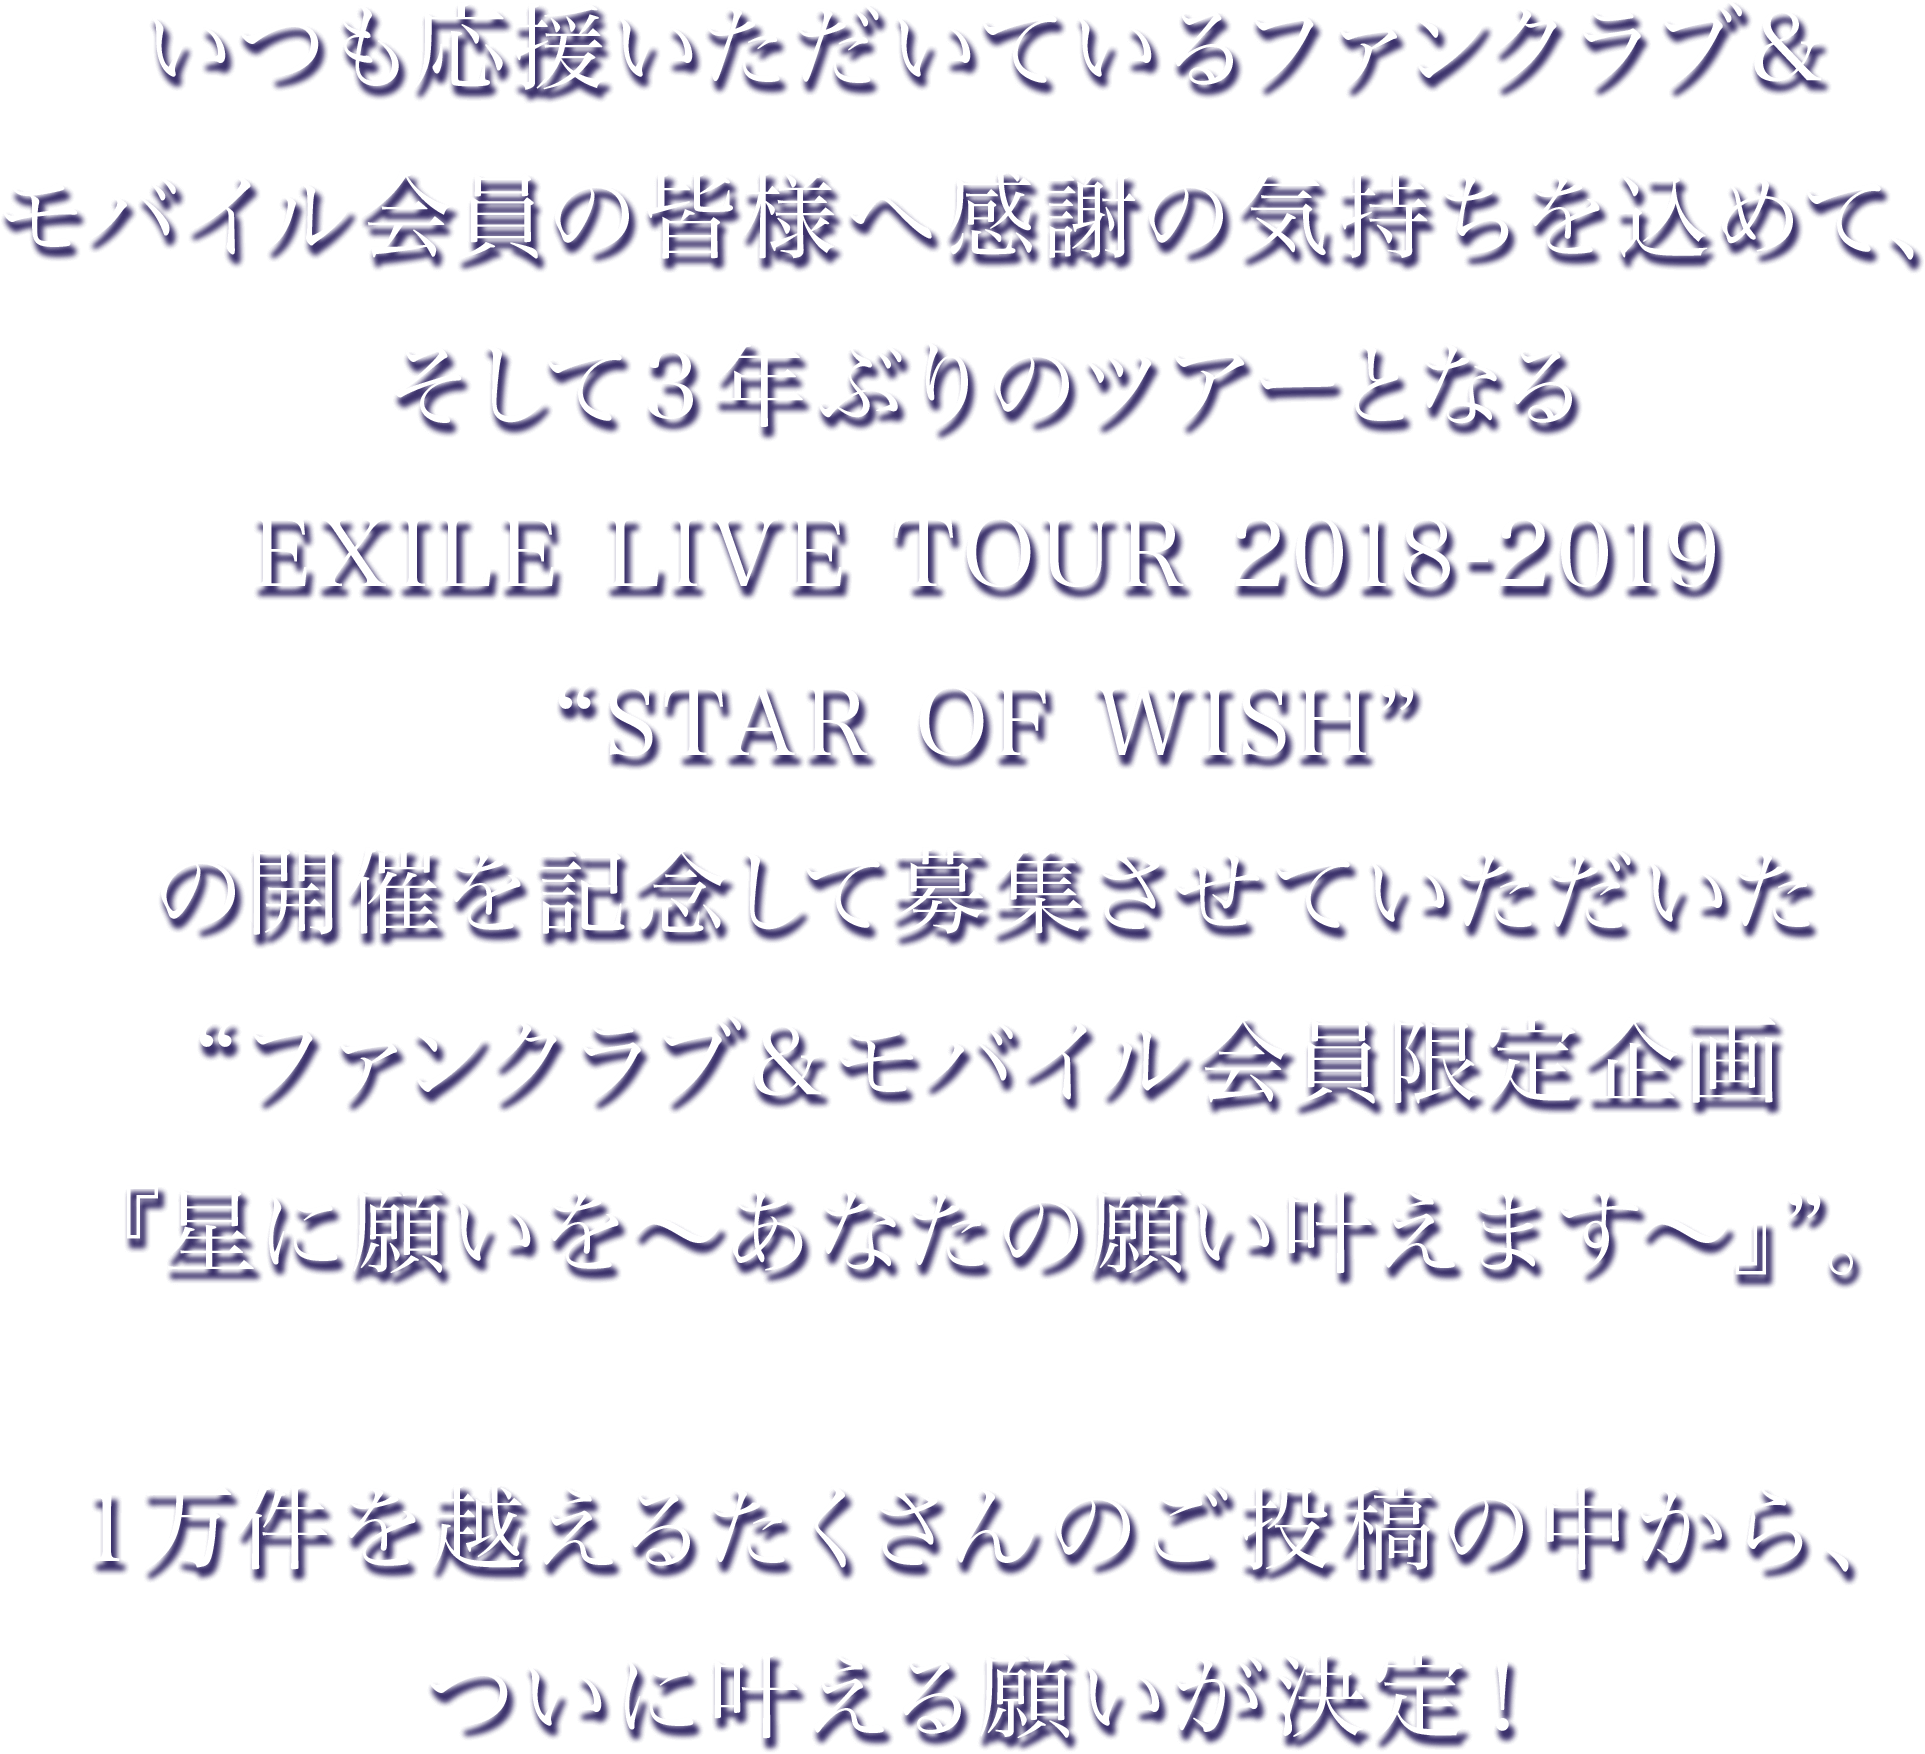 """EXILE LIVE TOUR 2018-2019 """"STAR OF WISH"""""""